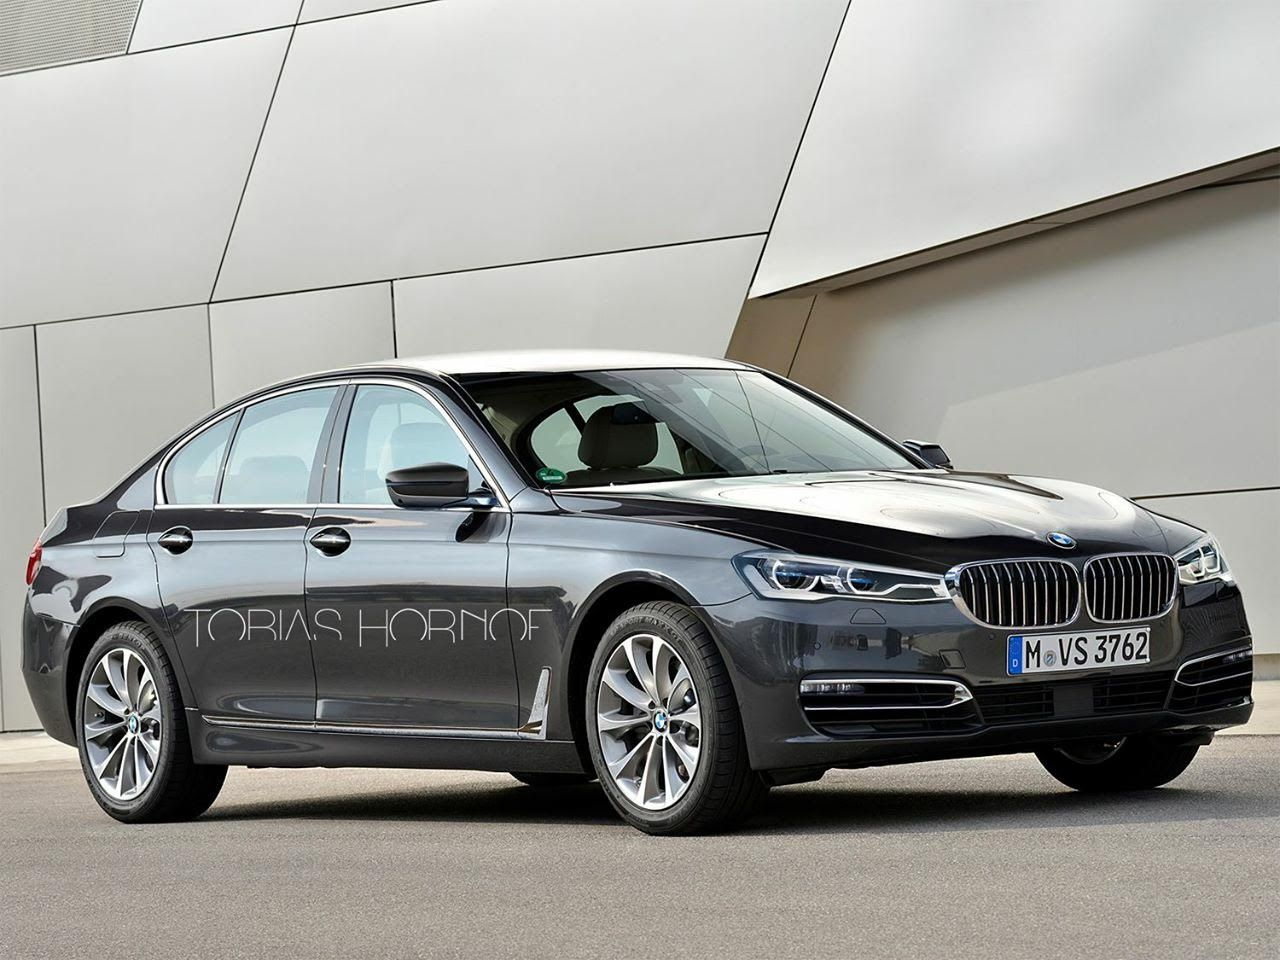 G30 bmw 5 series gets rendered again http www bmwblog